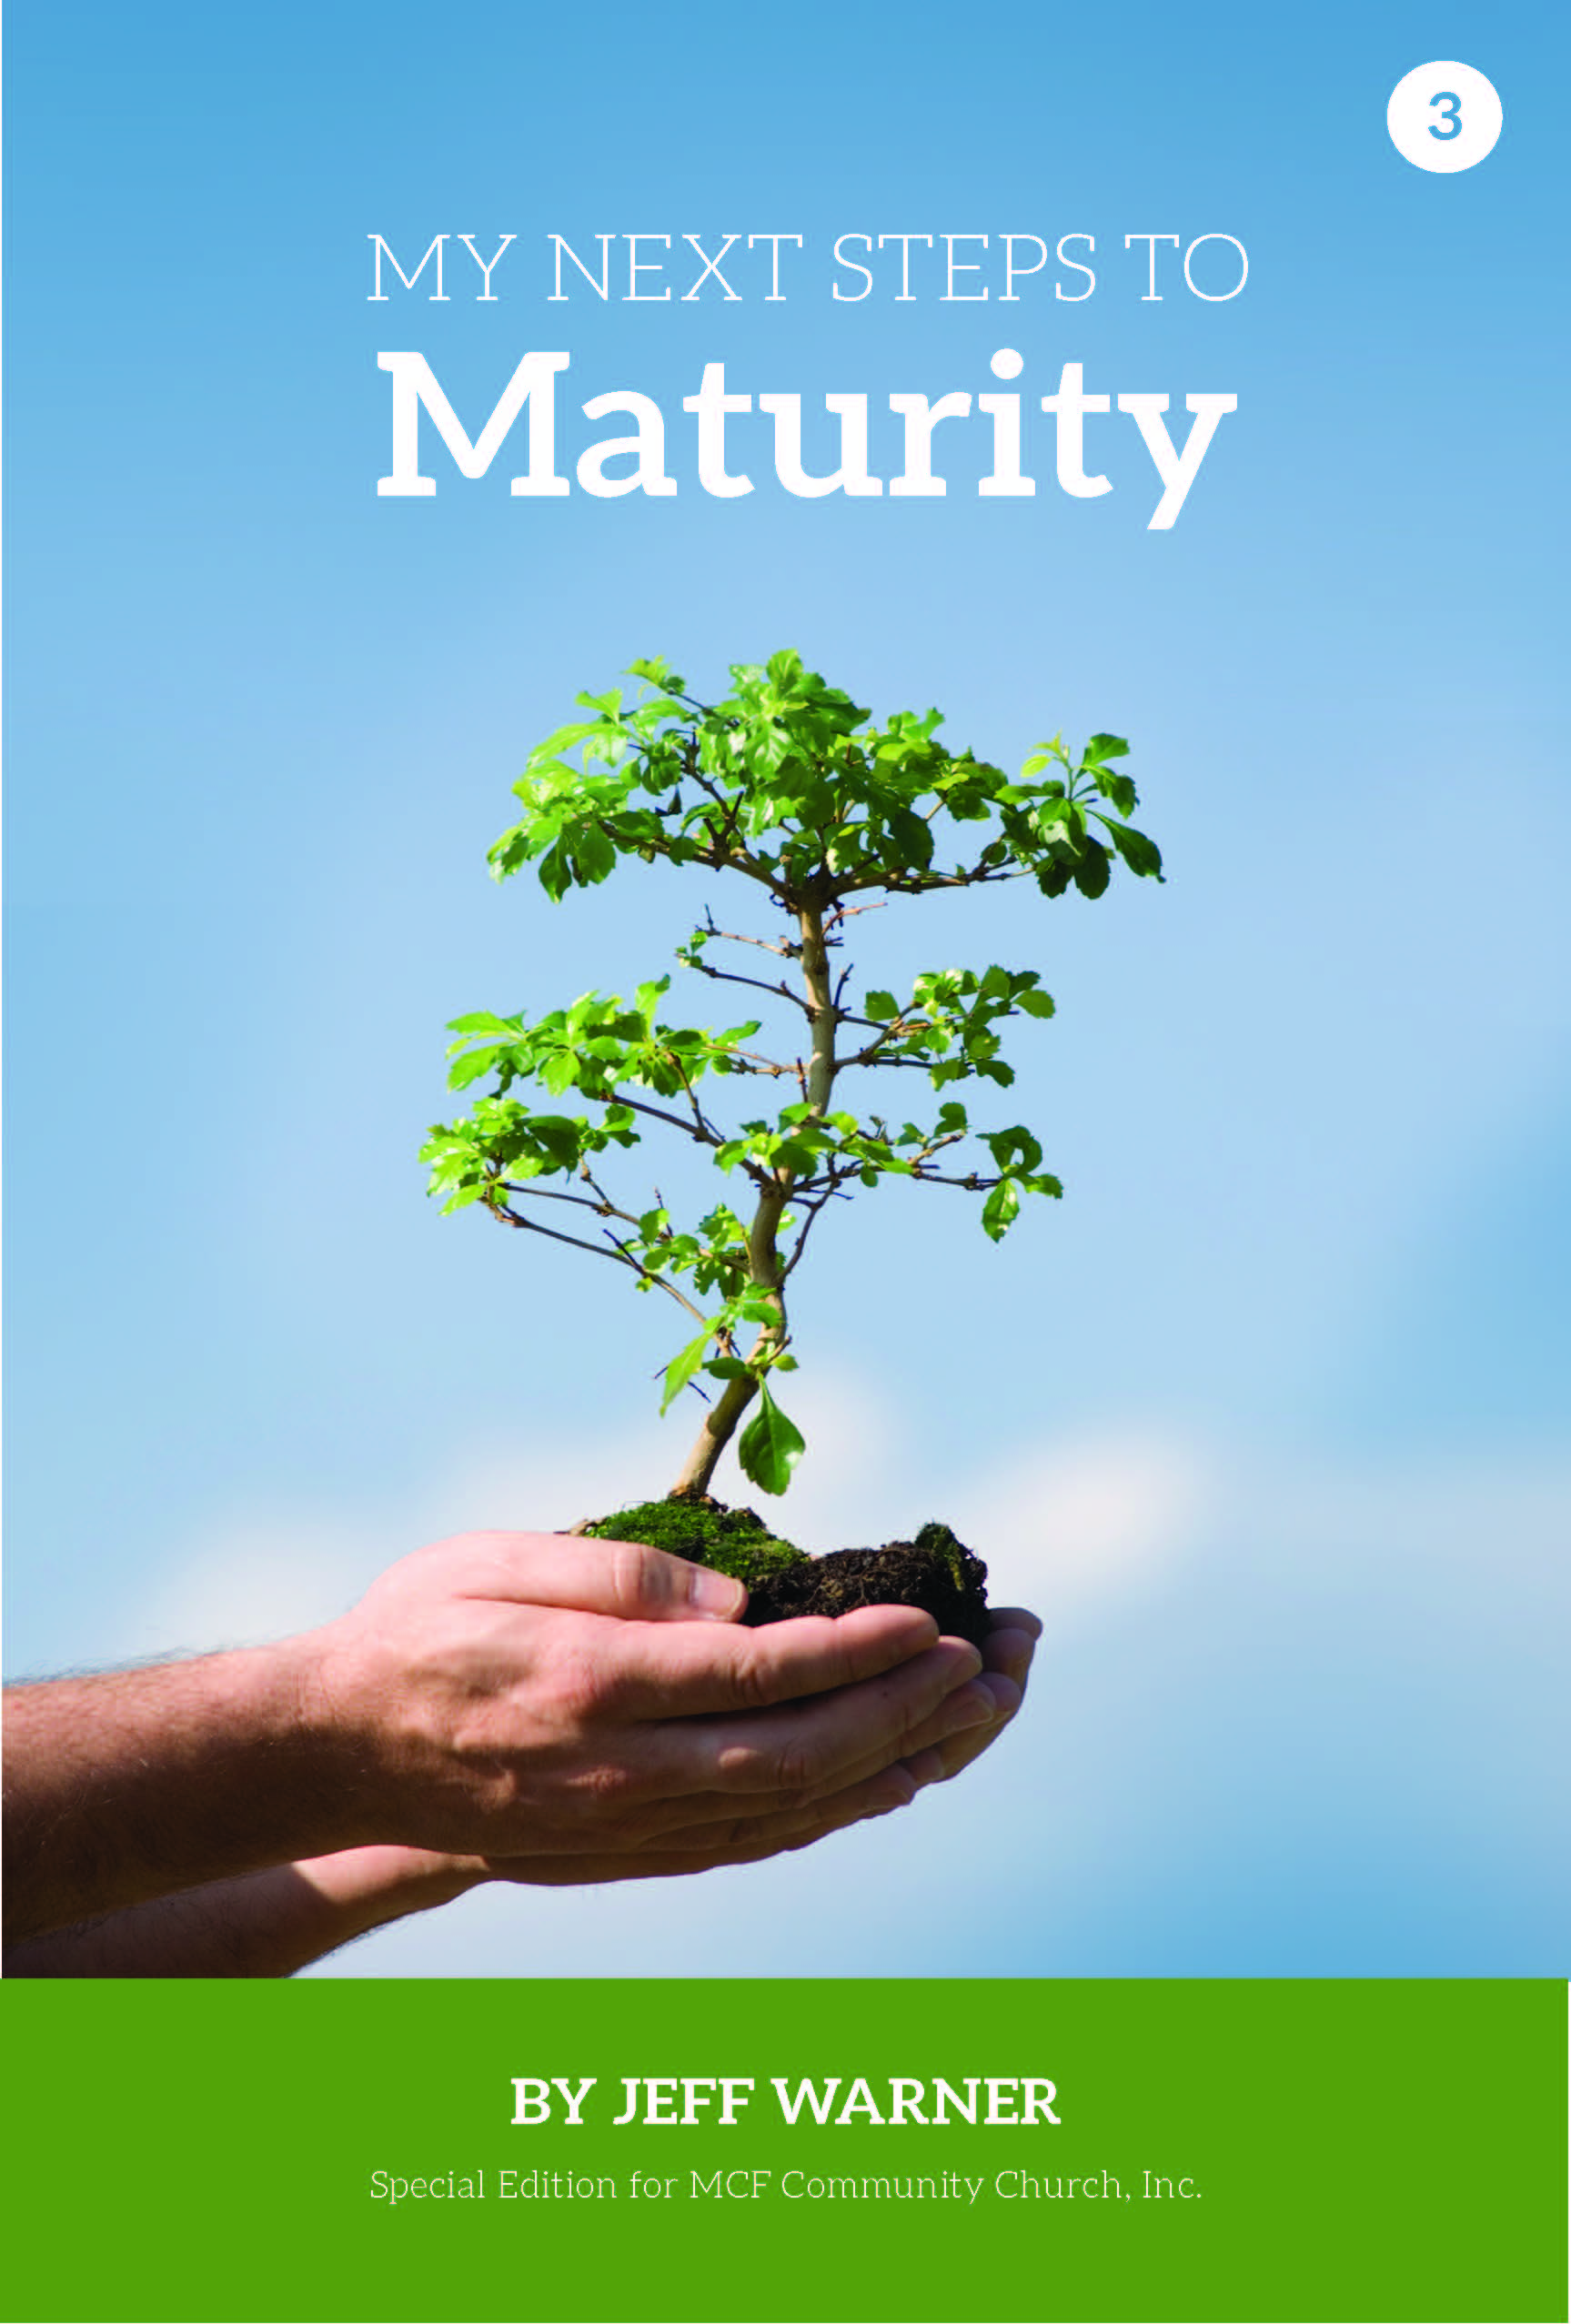 3-Maturity Cover-6Aug14.jpg